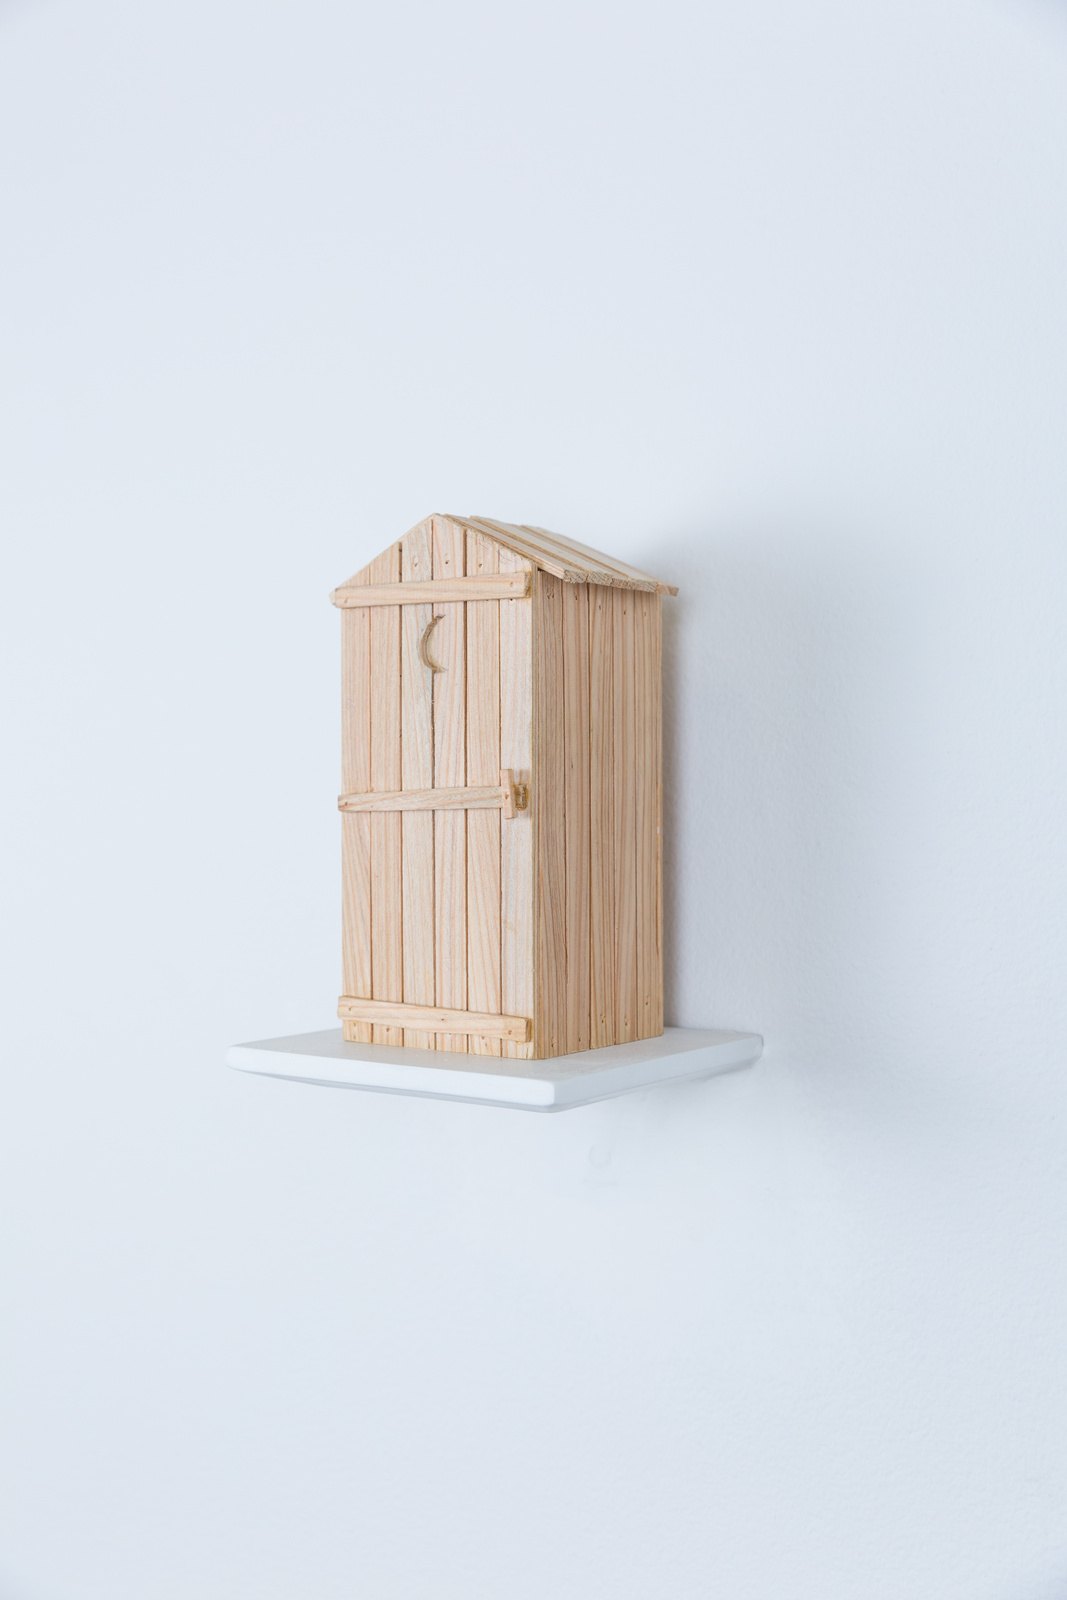 Dylan Cale Jones_Little Outhouse 2